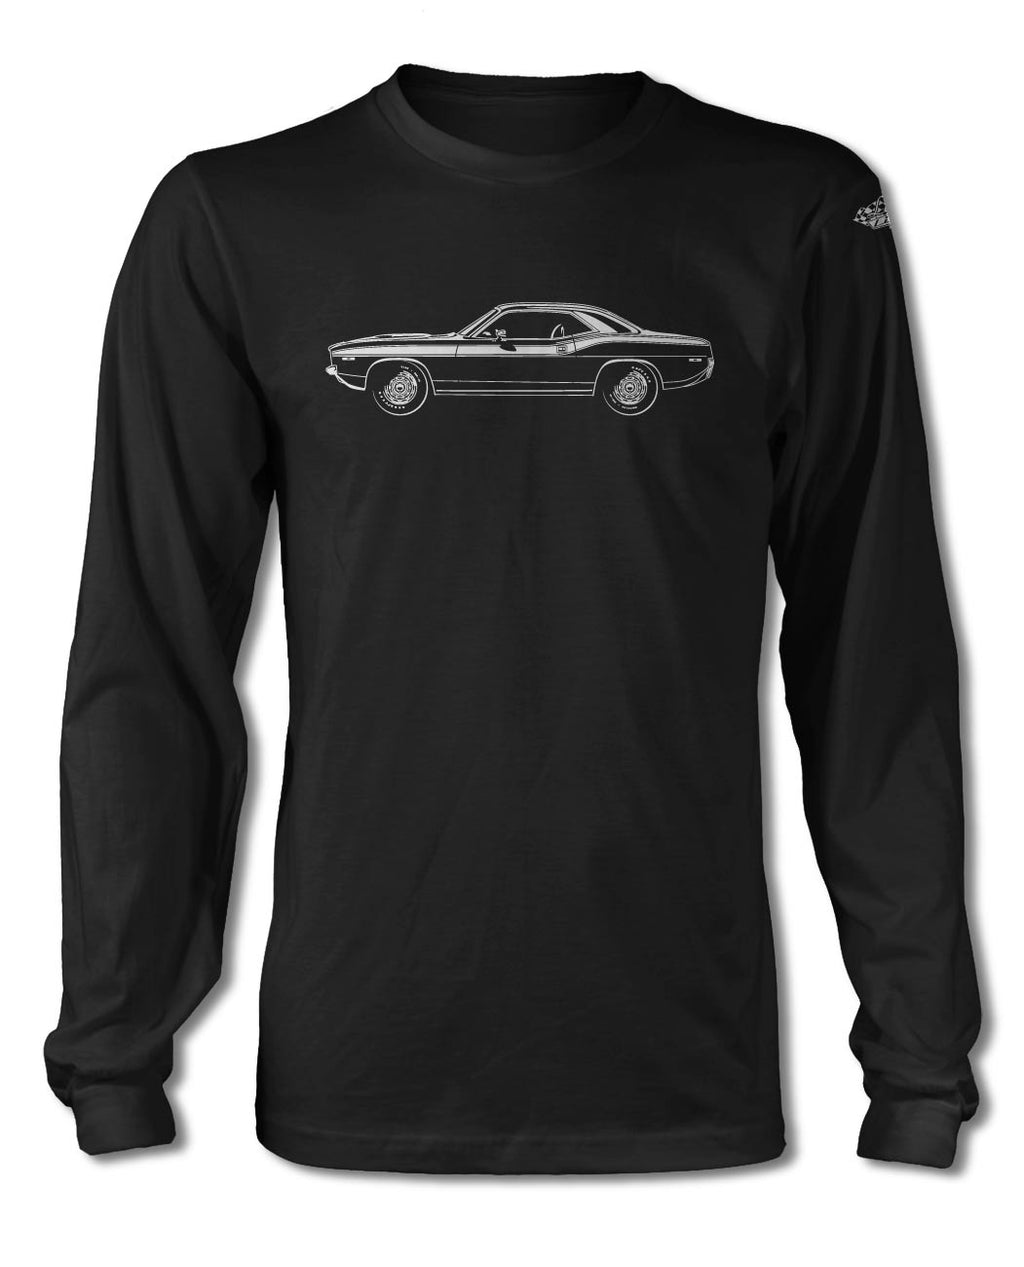 1972 Plymouth Barracuda 'Cuda 340 Coupe T-Shirt - Long Sleeves - Side View